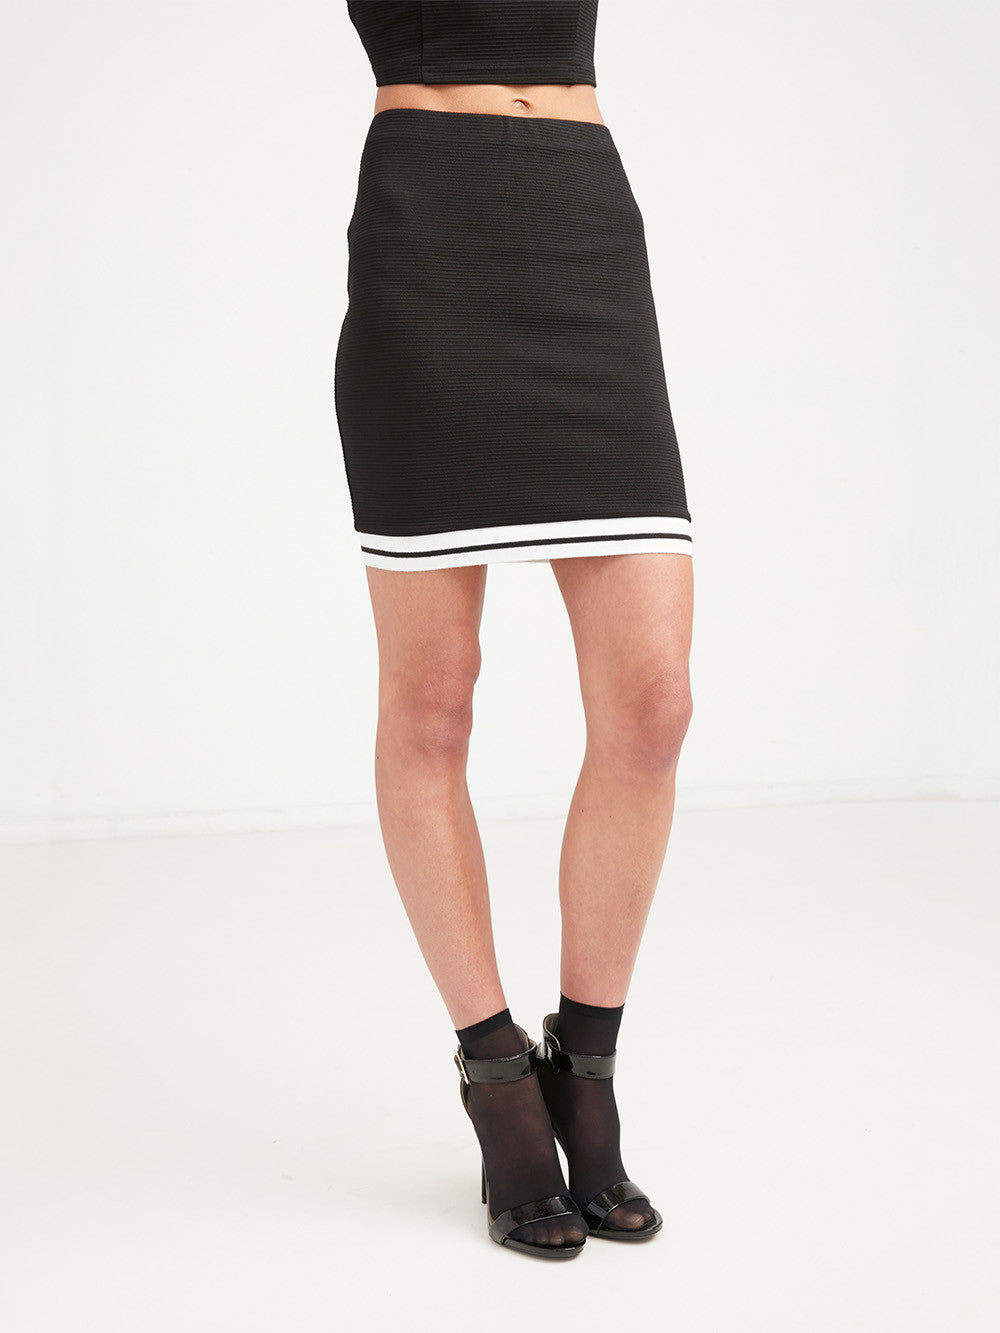 Reckless Girls Womens - Bottoms - Skirts Kylie Bodycon Skirt